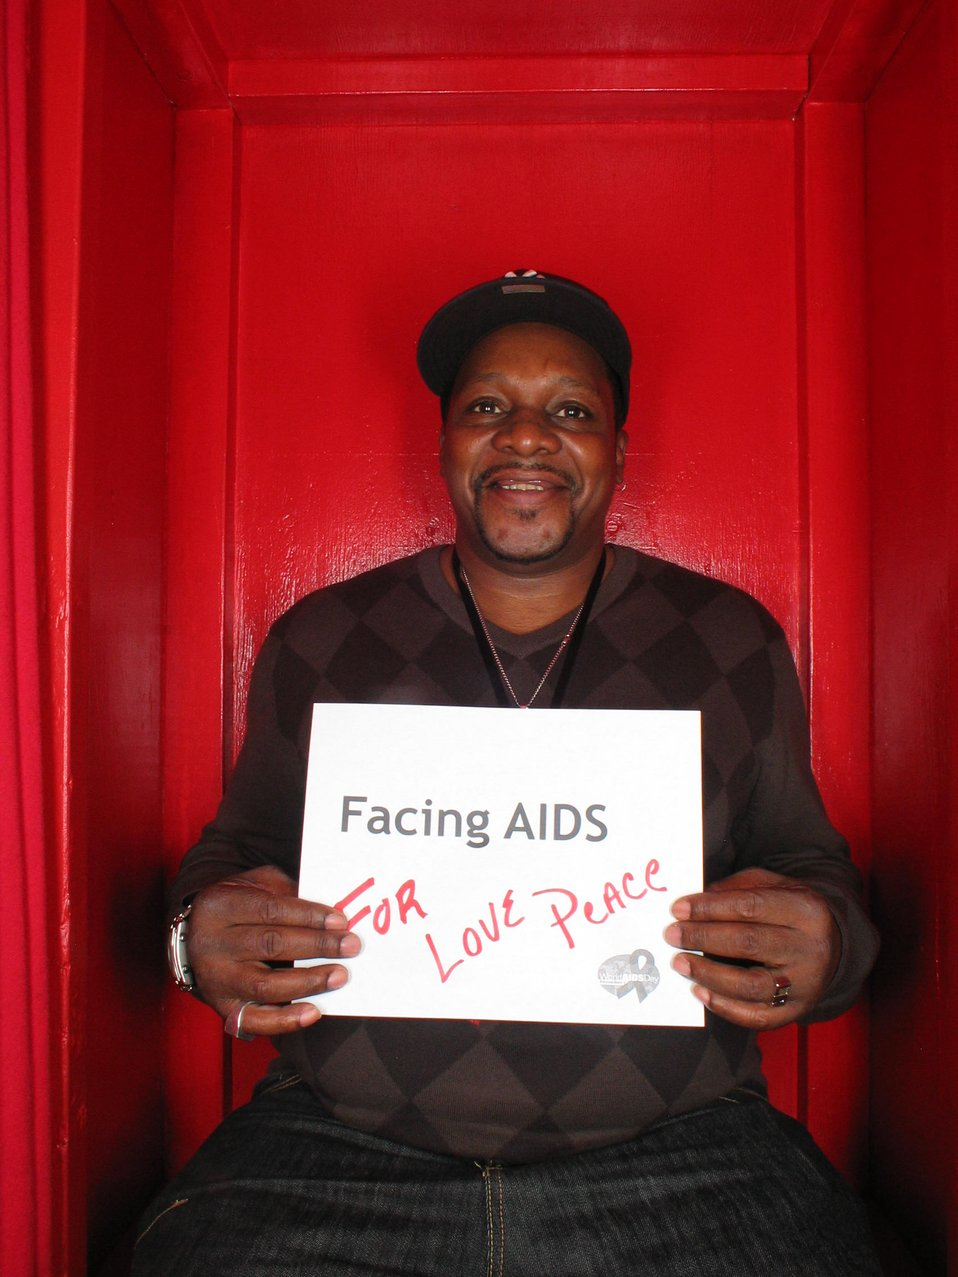 Facing AIDS for love peace.